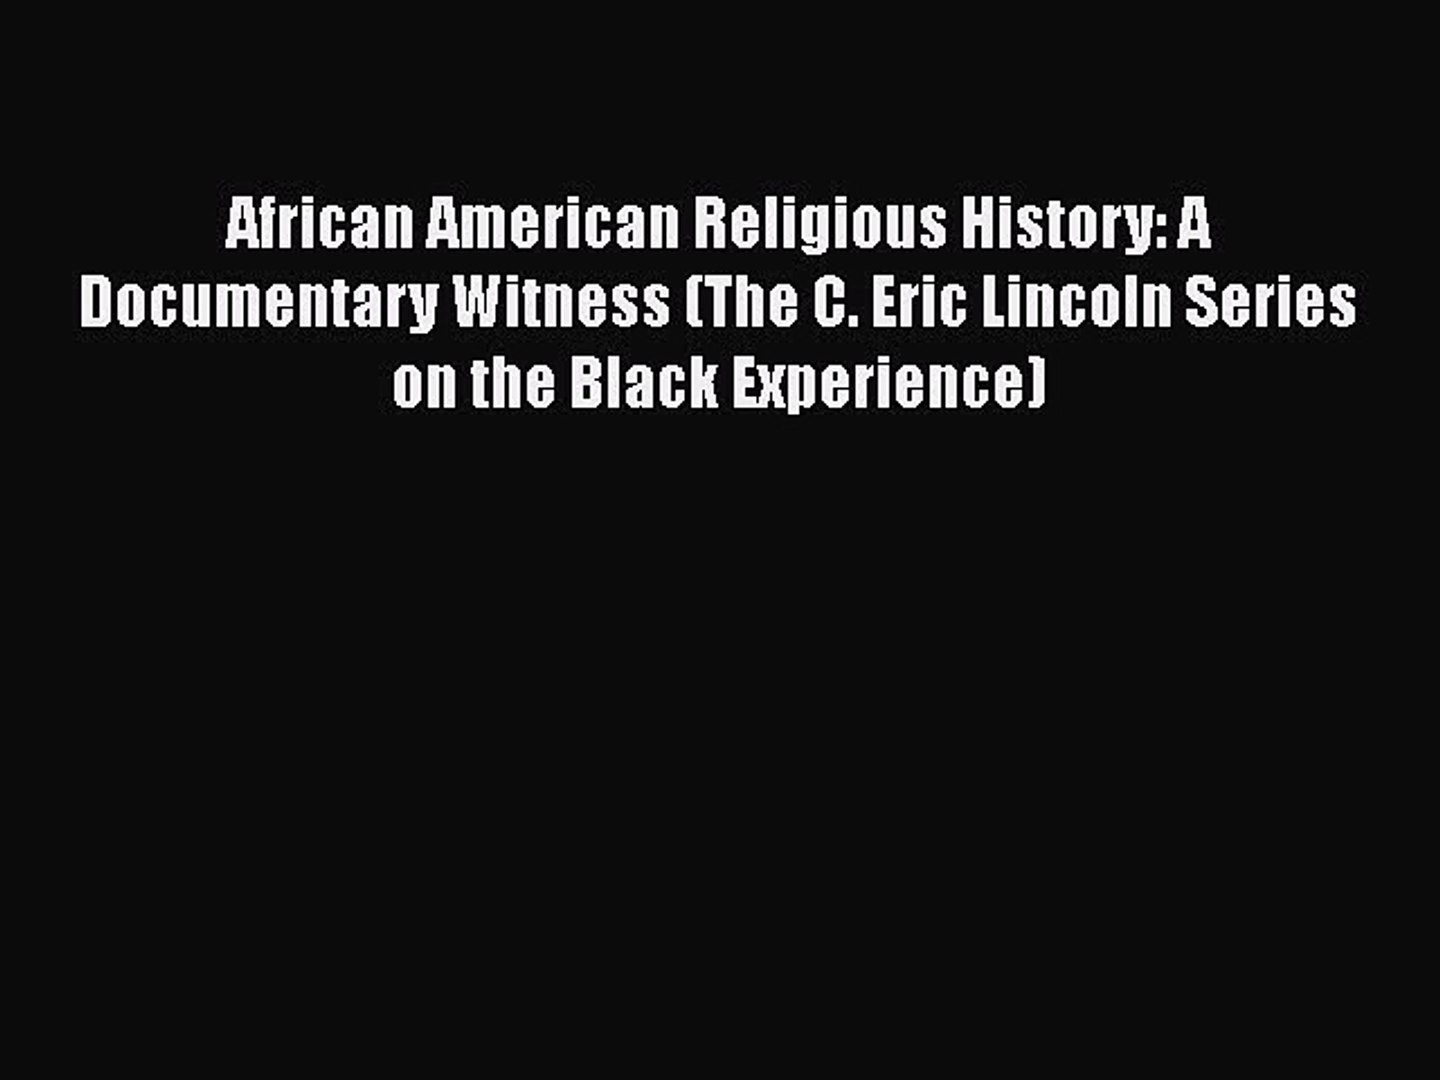 Read African American Religious History: A Documentary Witness (The C. Eric Lincoln Series